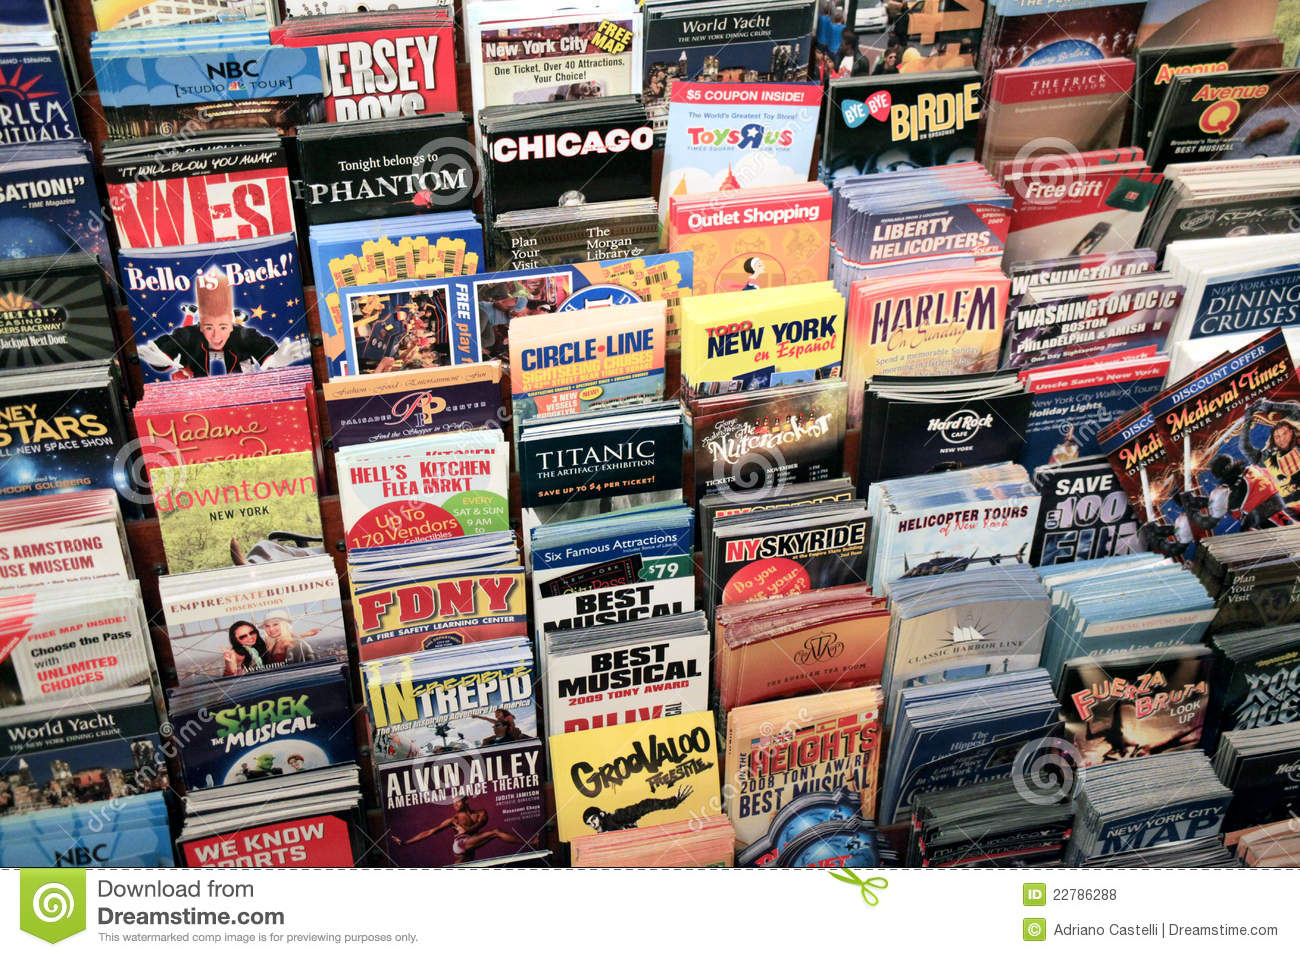 Advertising Flyers In New York Editorial Stock Photo - Image: 22786288